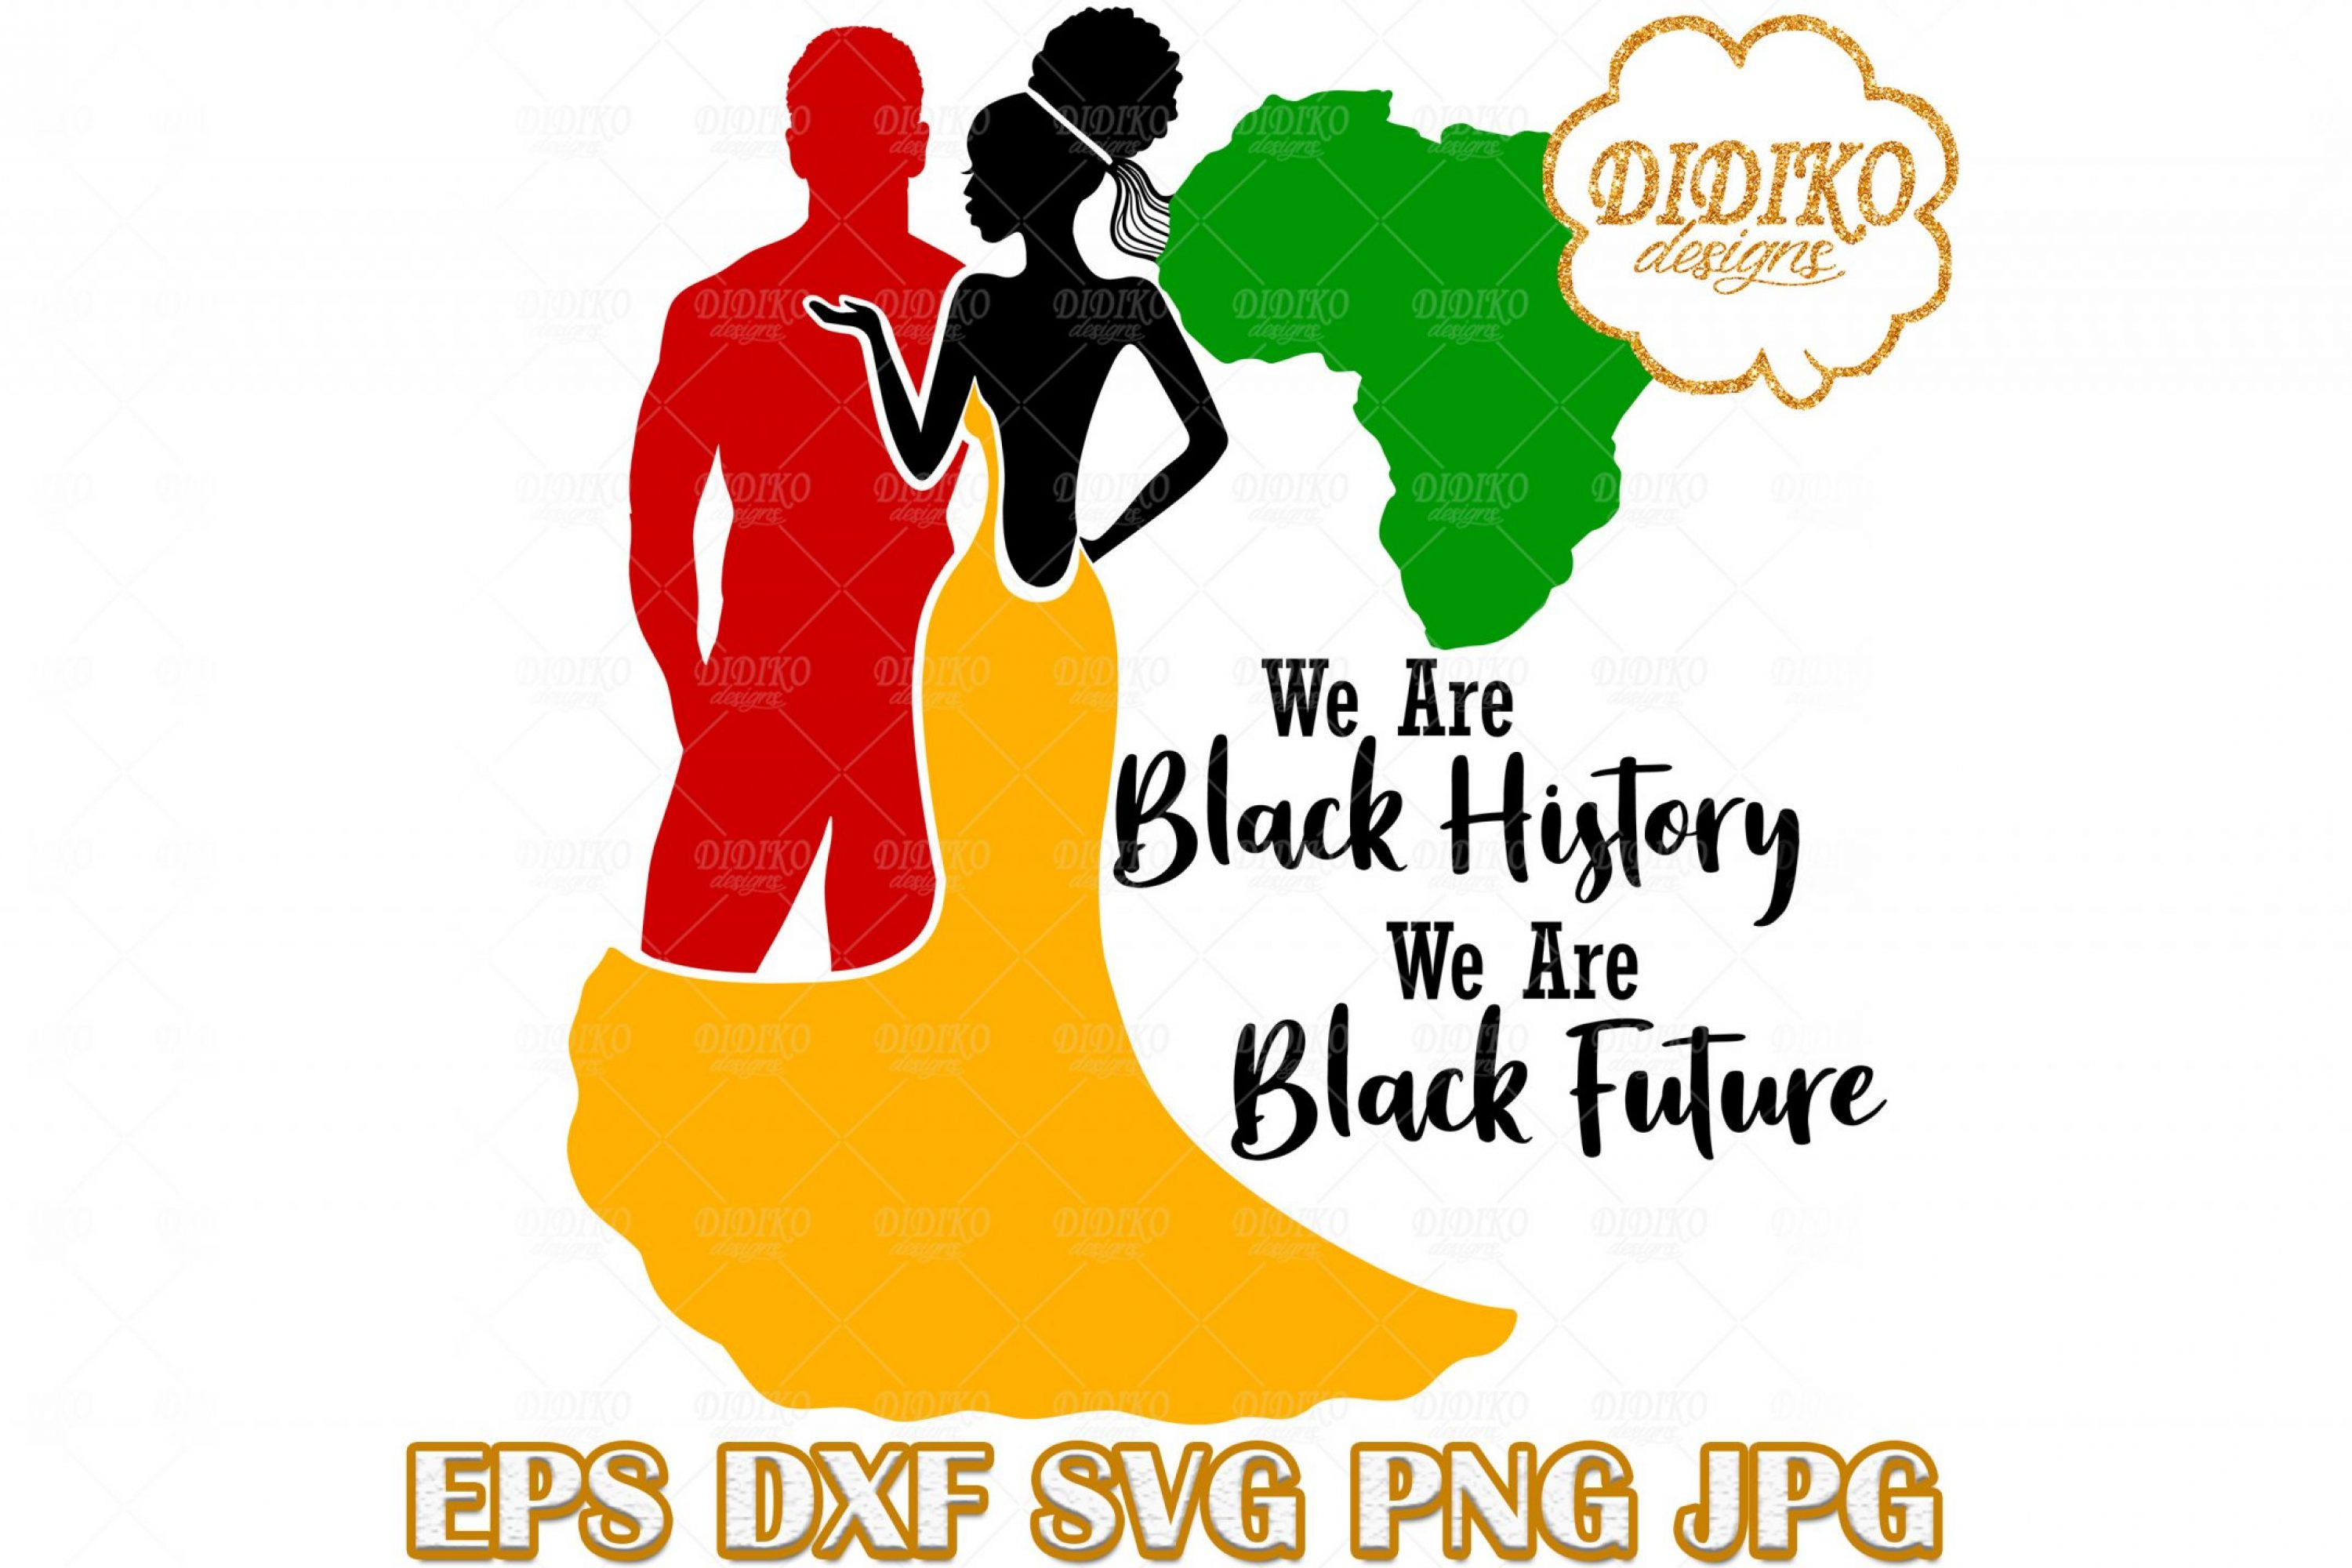 Black Couple SVG #2, Afro Wedding SVG, Afro Woman SVG, Africa SVG, Black History SVG, Cricut File